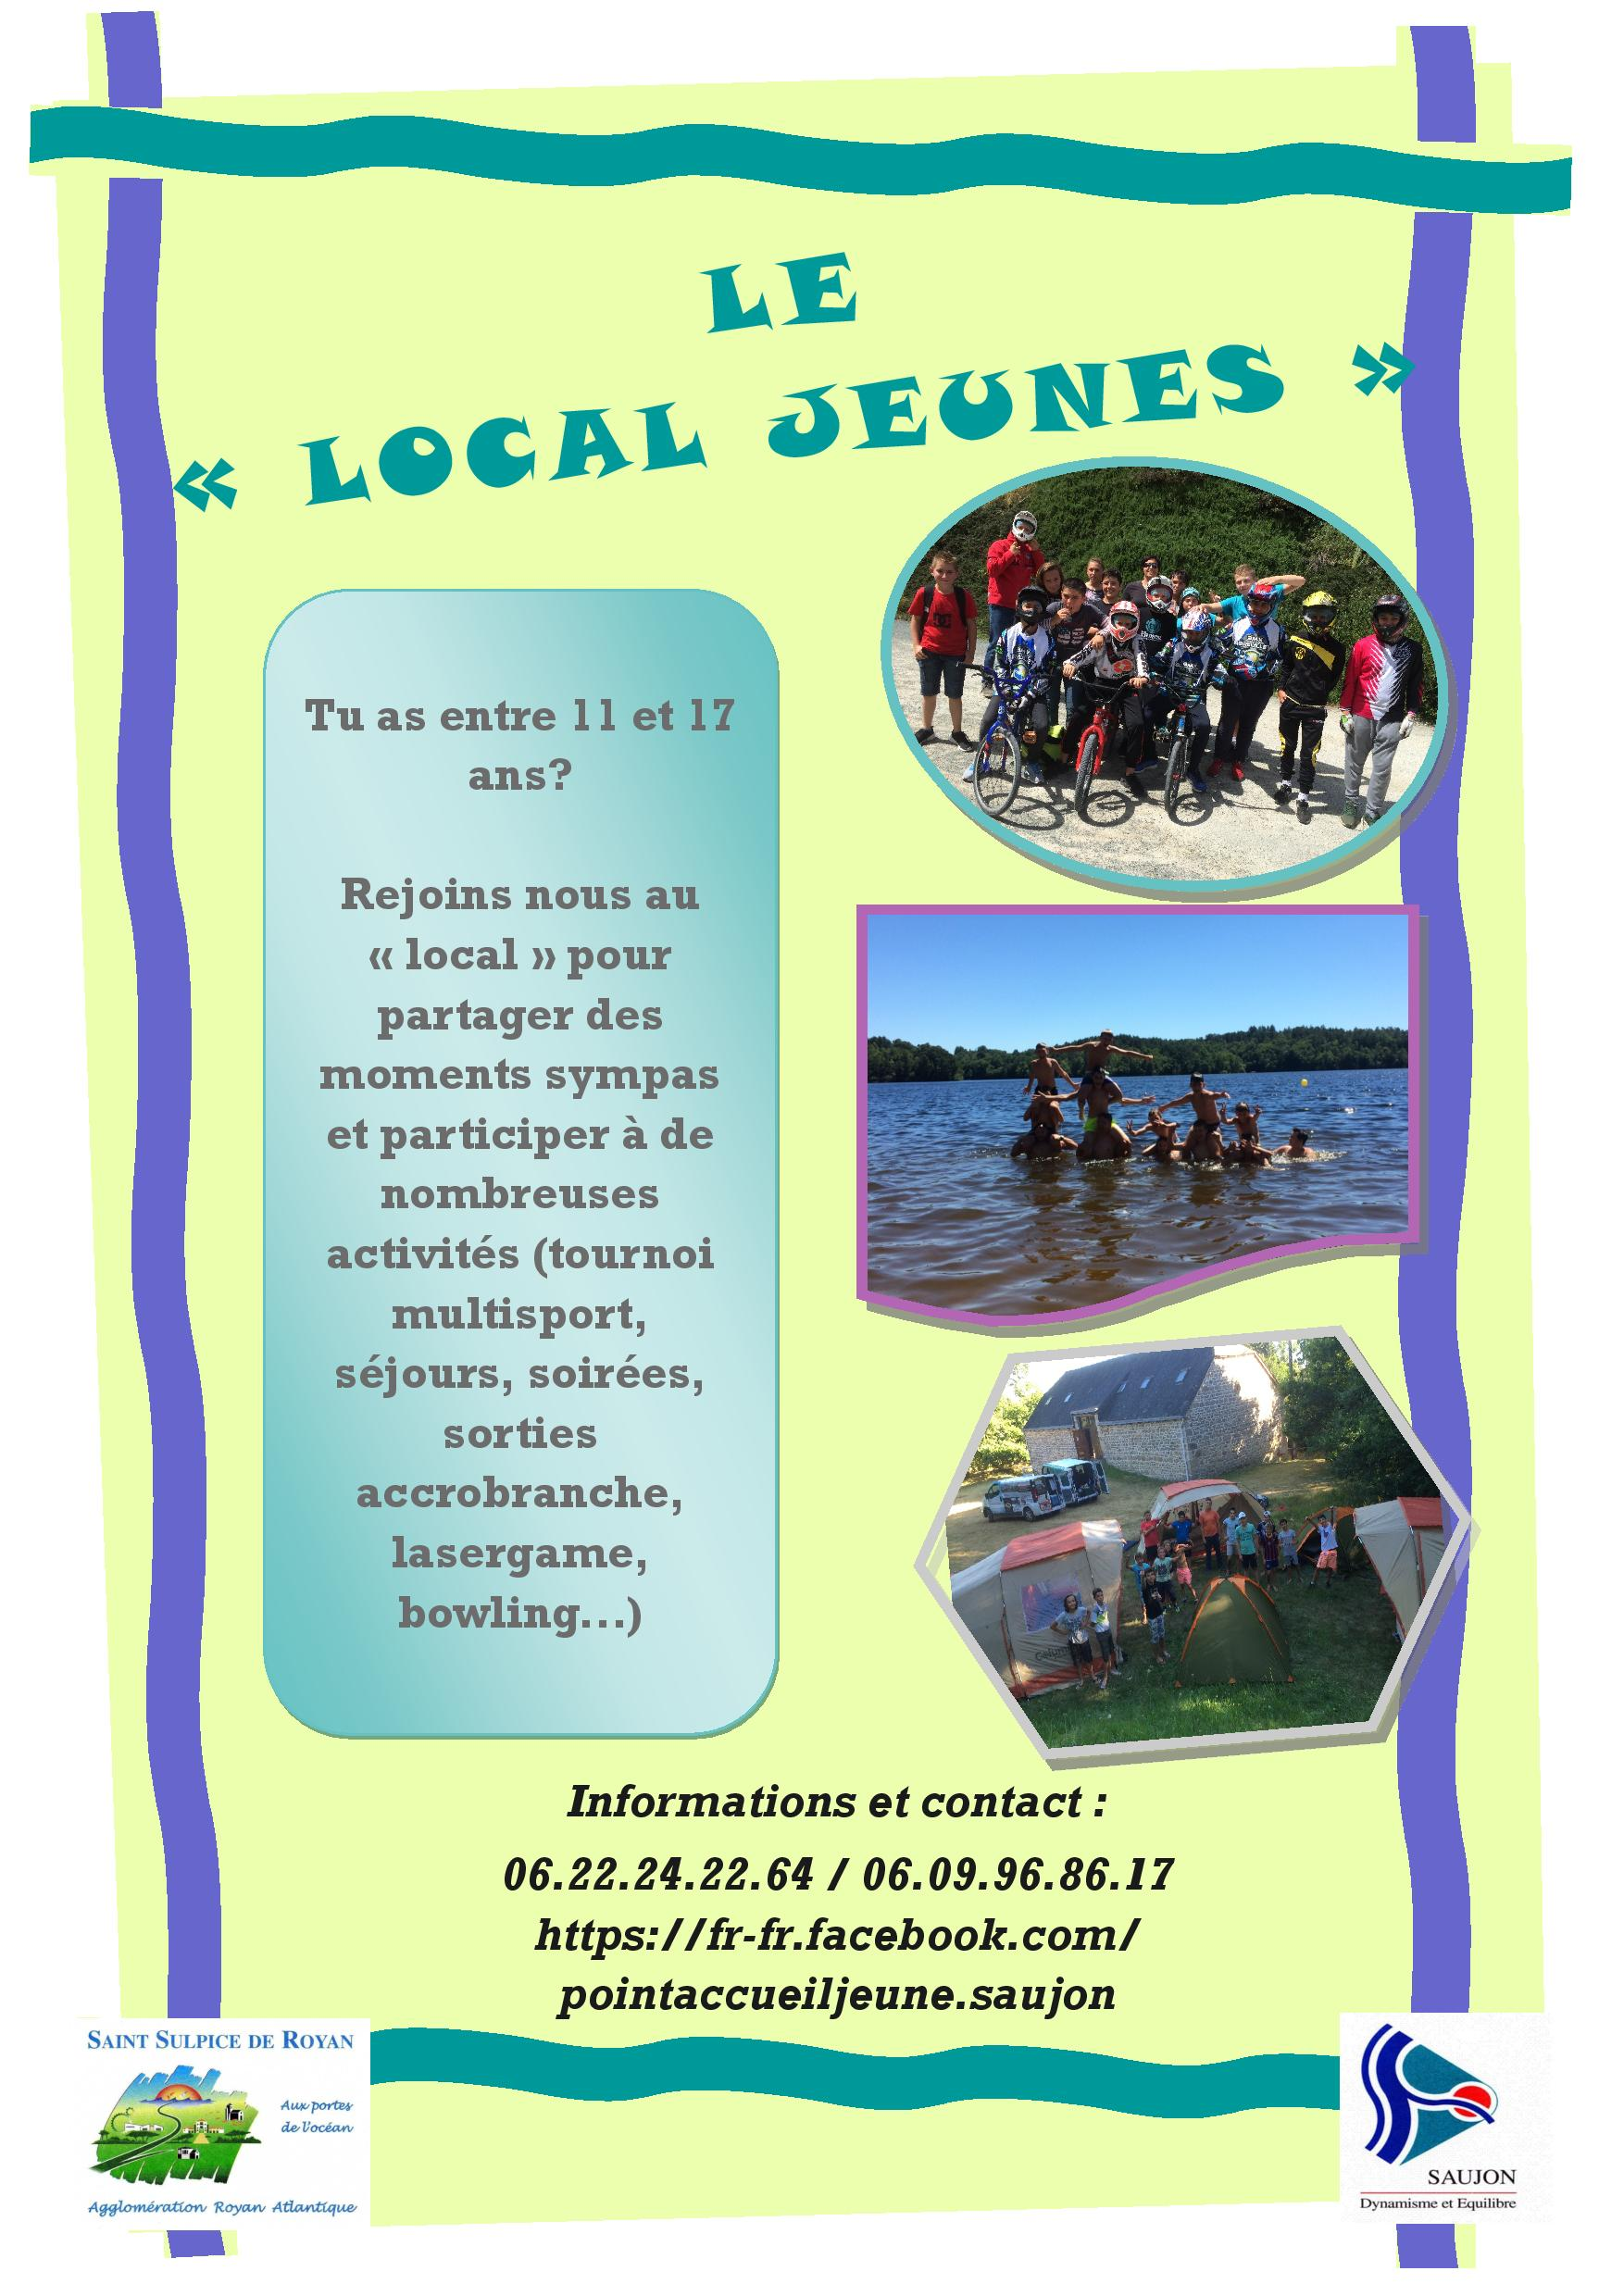 local Jeunes - Saint-Sulpice-de-Royan